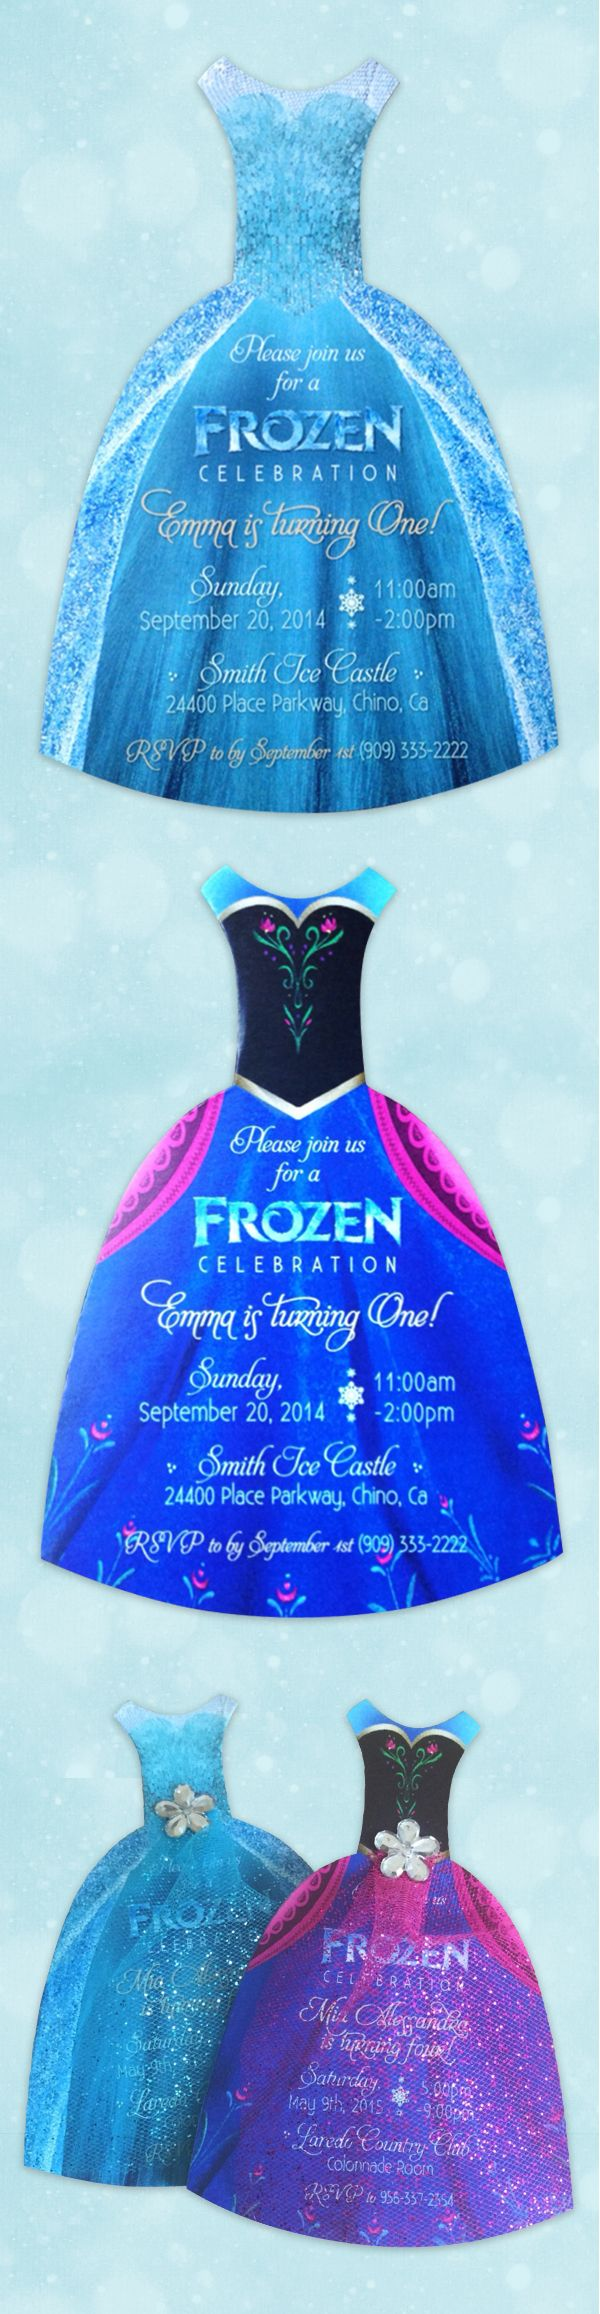 Frozen Party Invitation. Great Invite for your little girls Frozen themed Birthday Party!